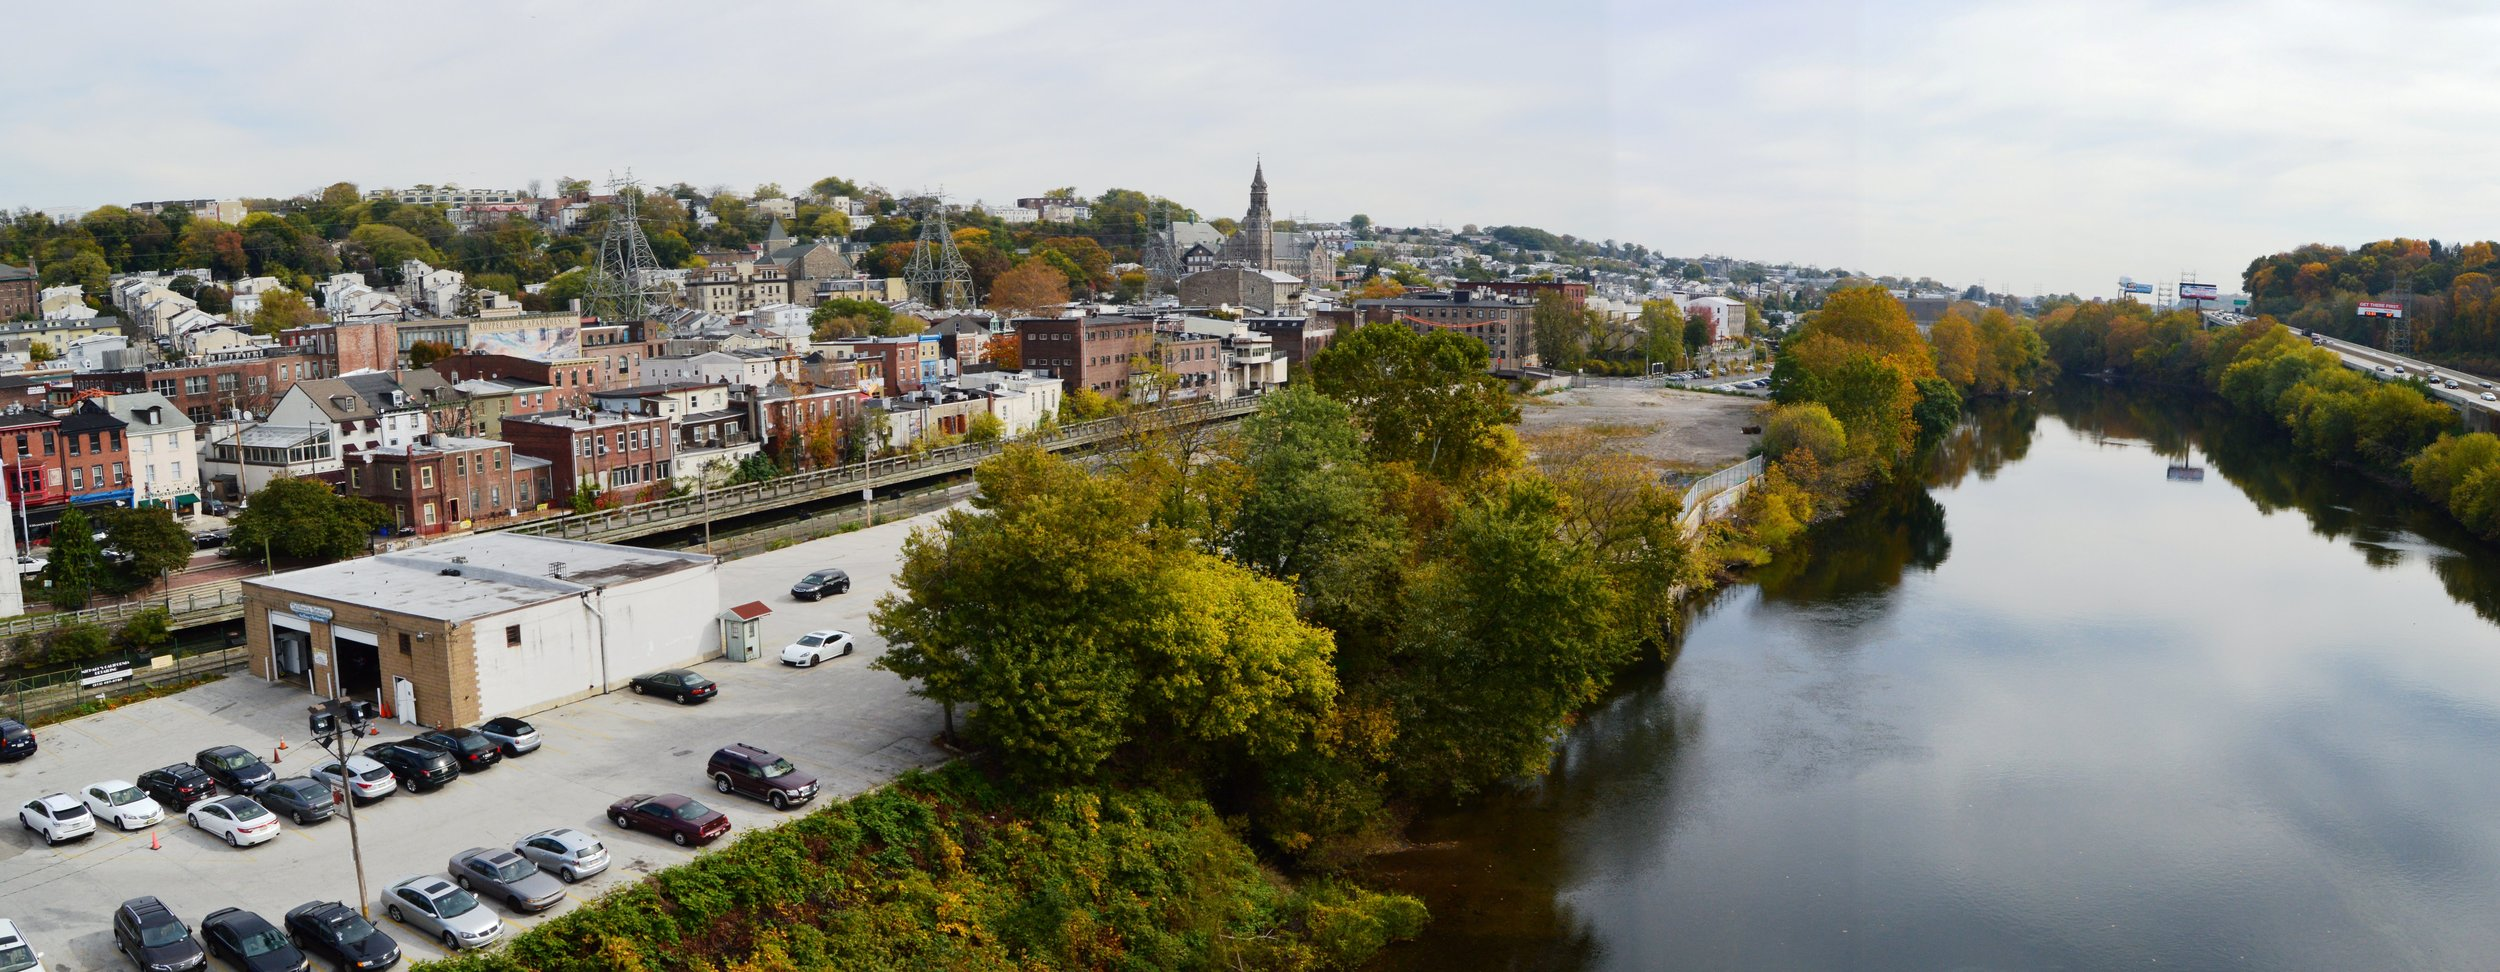 View_from_Manayunk_Bridge,_October_2014.jpg